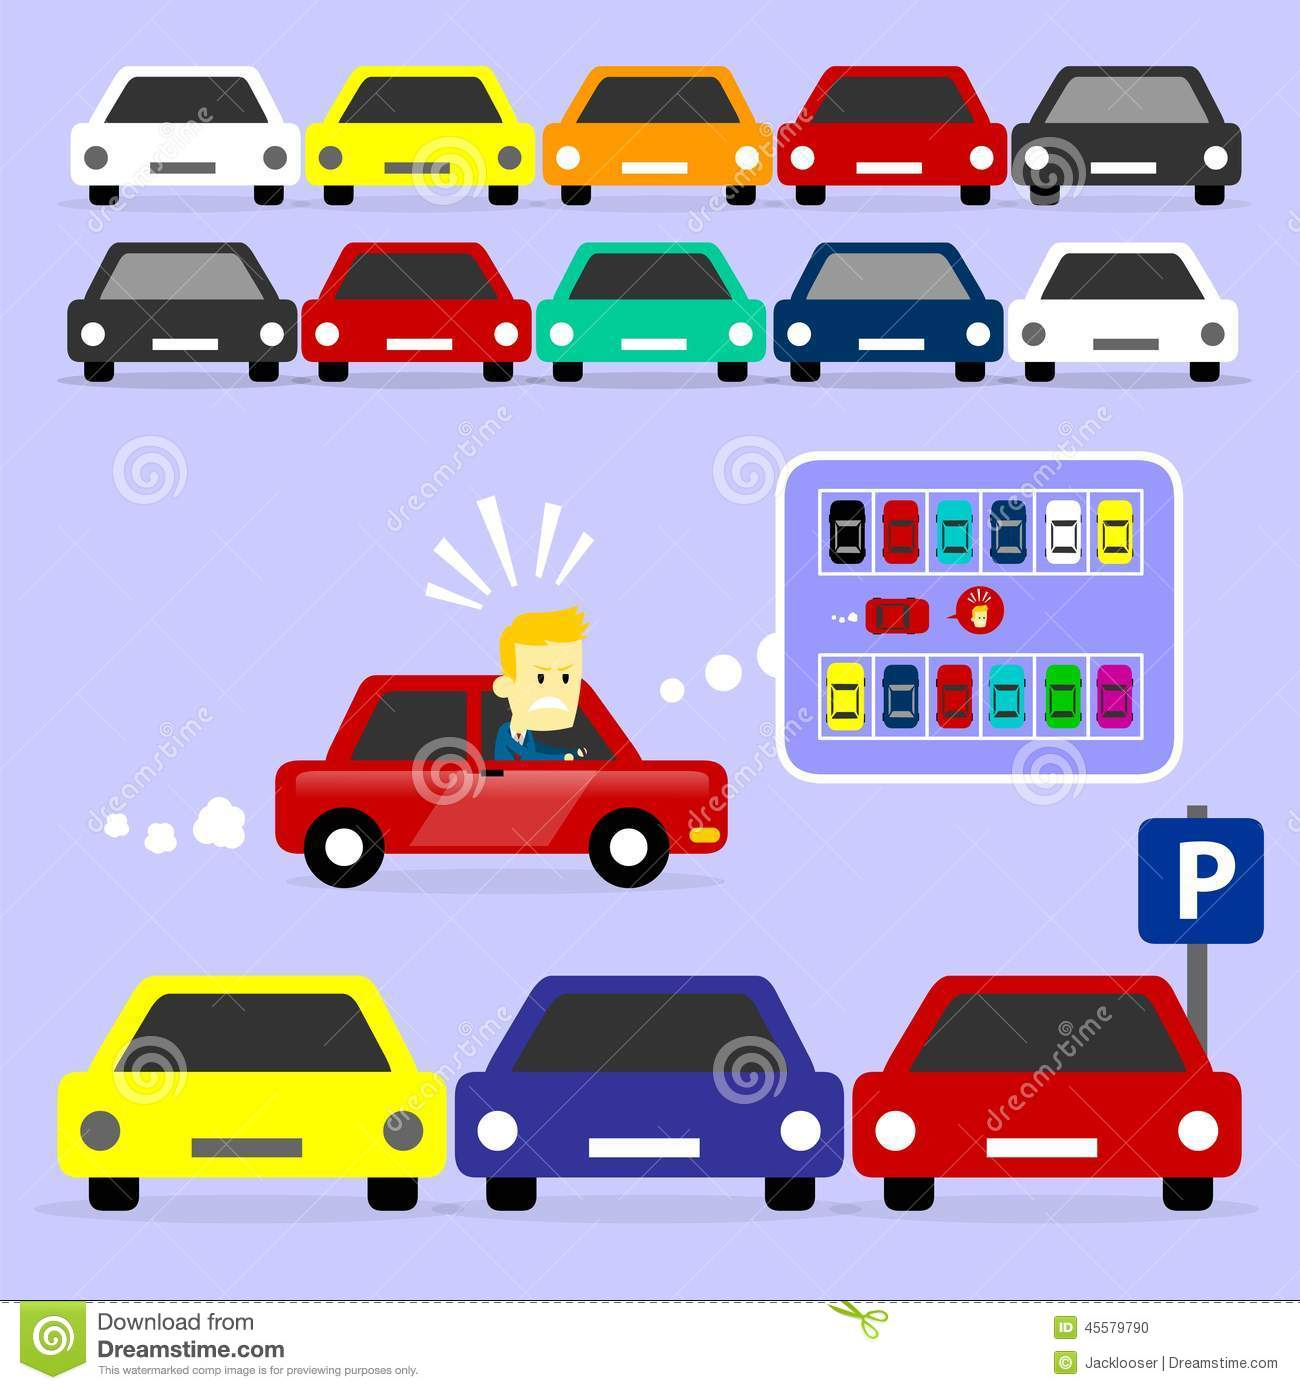 svg library library Parking lot clipart parking garage.  clip art clipartlook